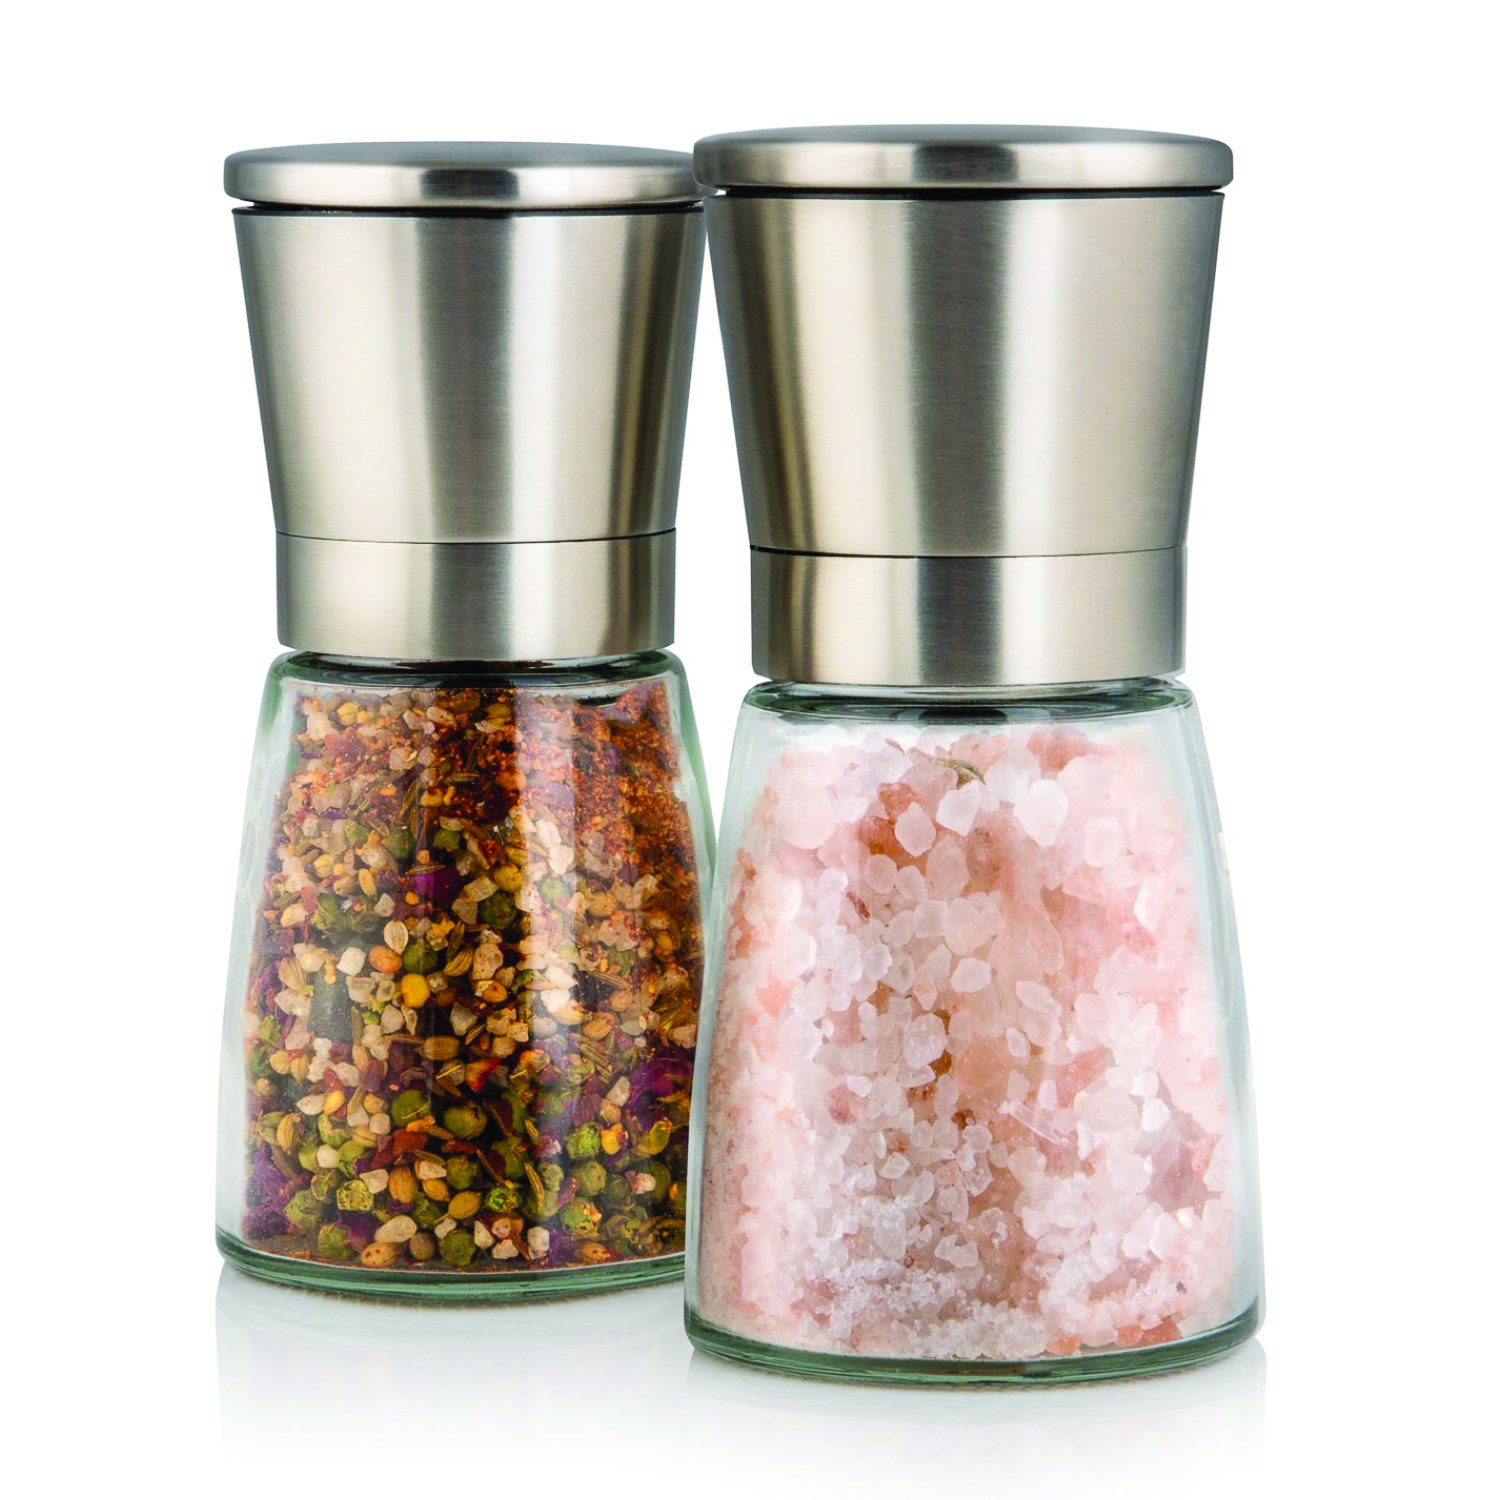 Elegant Salt and Pepper Grinder Set with Matching Stand - Stunning Glass Body with Adjustable Ceramic Grinder - Premium Pair of Salt & Peppercorn Mills - Brushed Stainless Steel Salt and Pepper Shakers - Set of 2 Twinz Products TW-GR-2